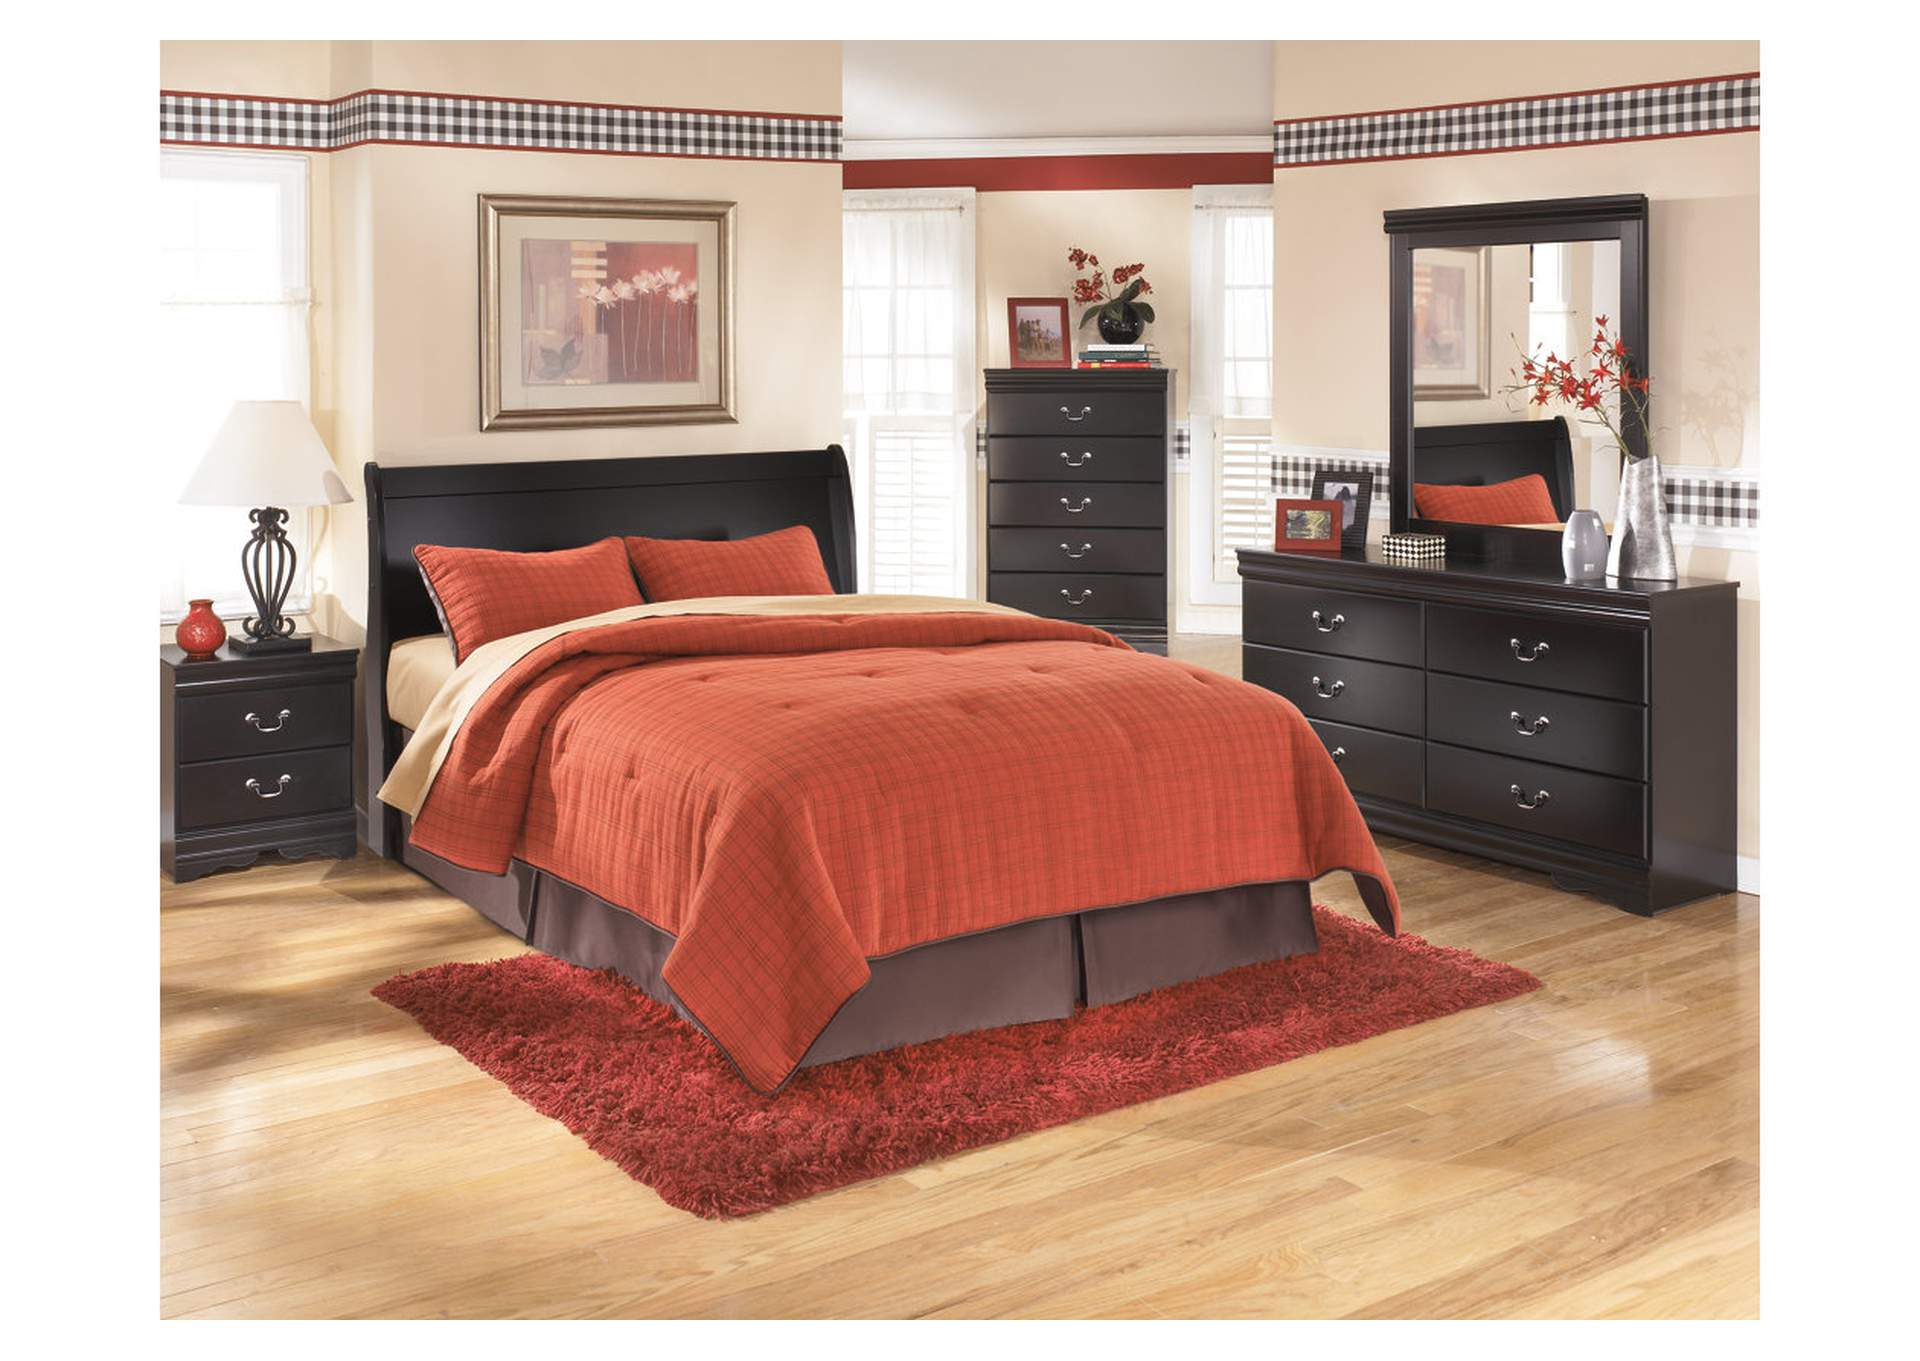 Huey Vineyard King Sleigh Headboard w/Dresser, Mirror & Drawer Chest,Signature Design by Ashley